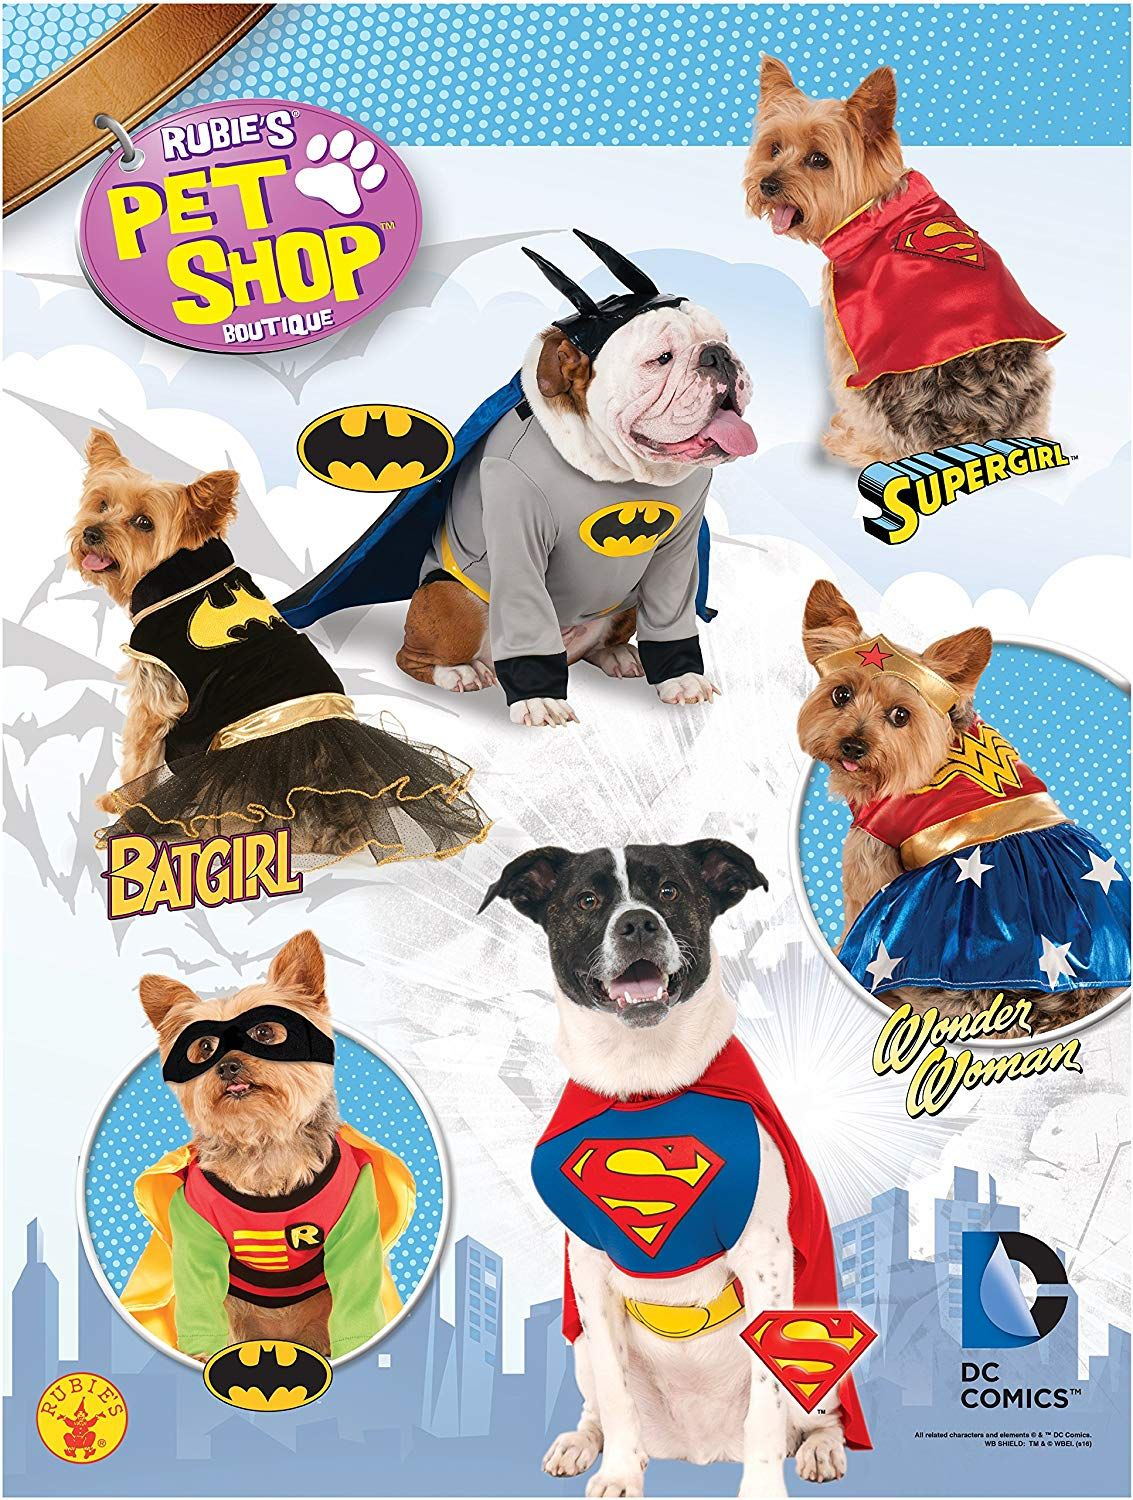 Amazon Com Rubie S Dc Comics Pet Costume Medium Wonder Woman Wonderwoman Dog Costume Pet Supplies Dog Dogs Funny Pet Costumes Santa Dog Costume Pets